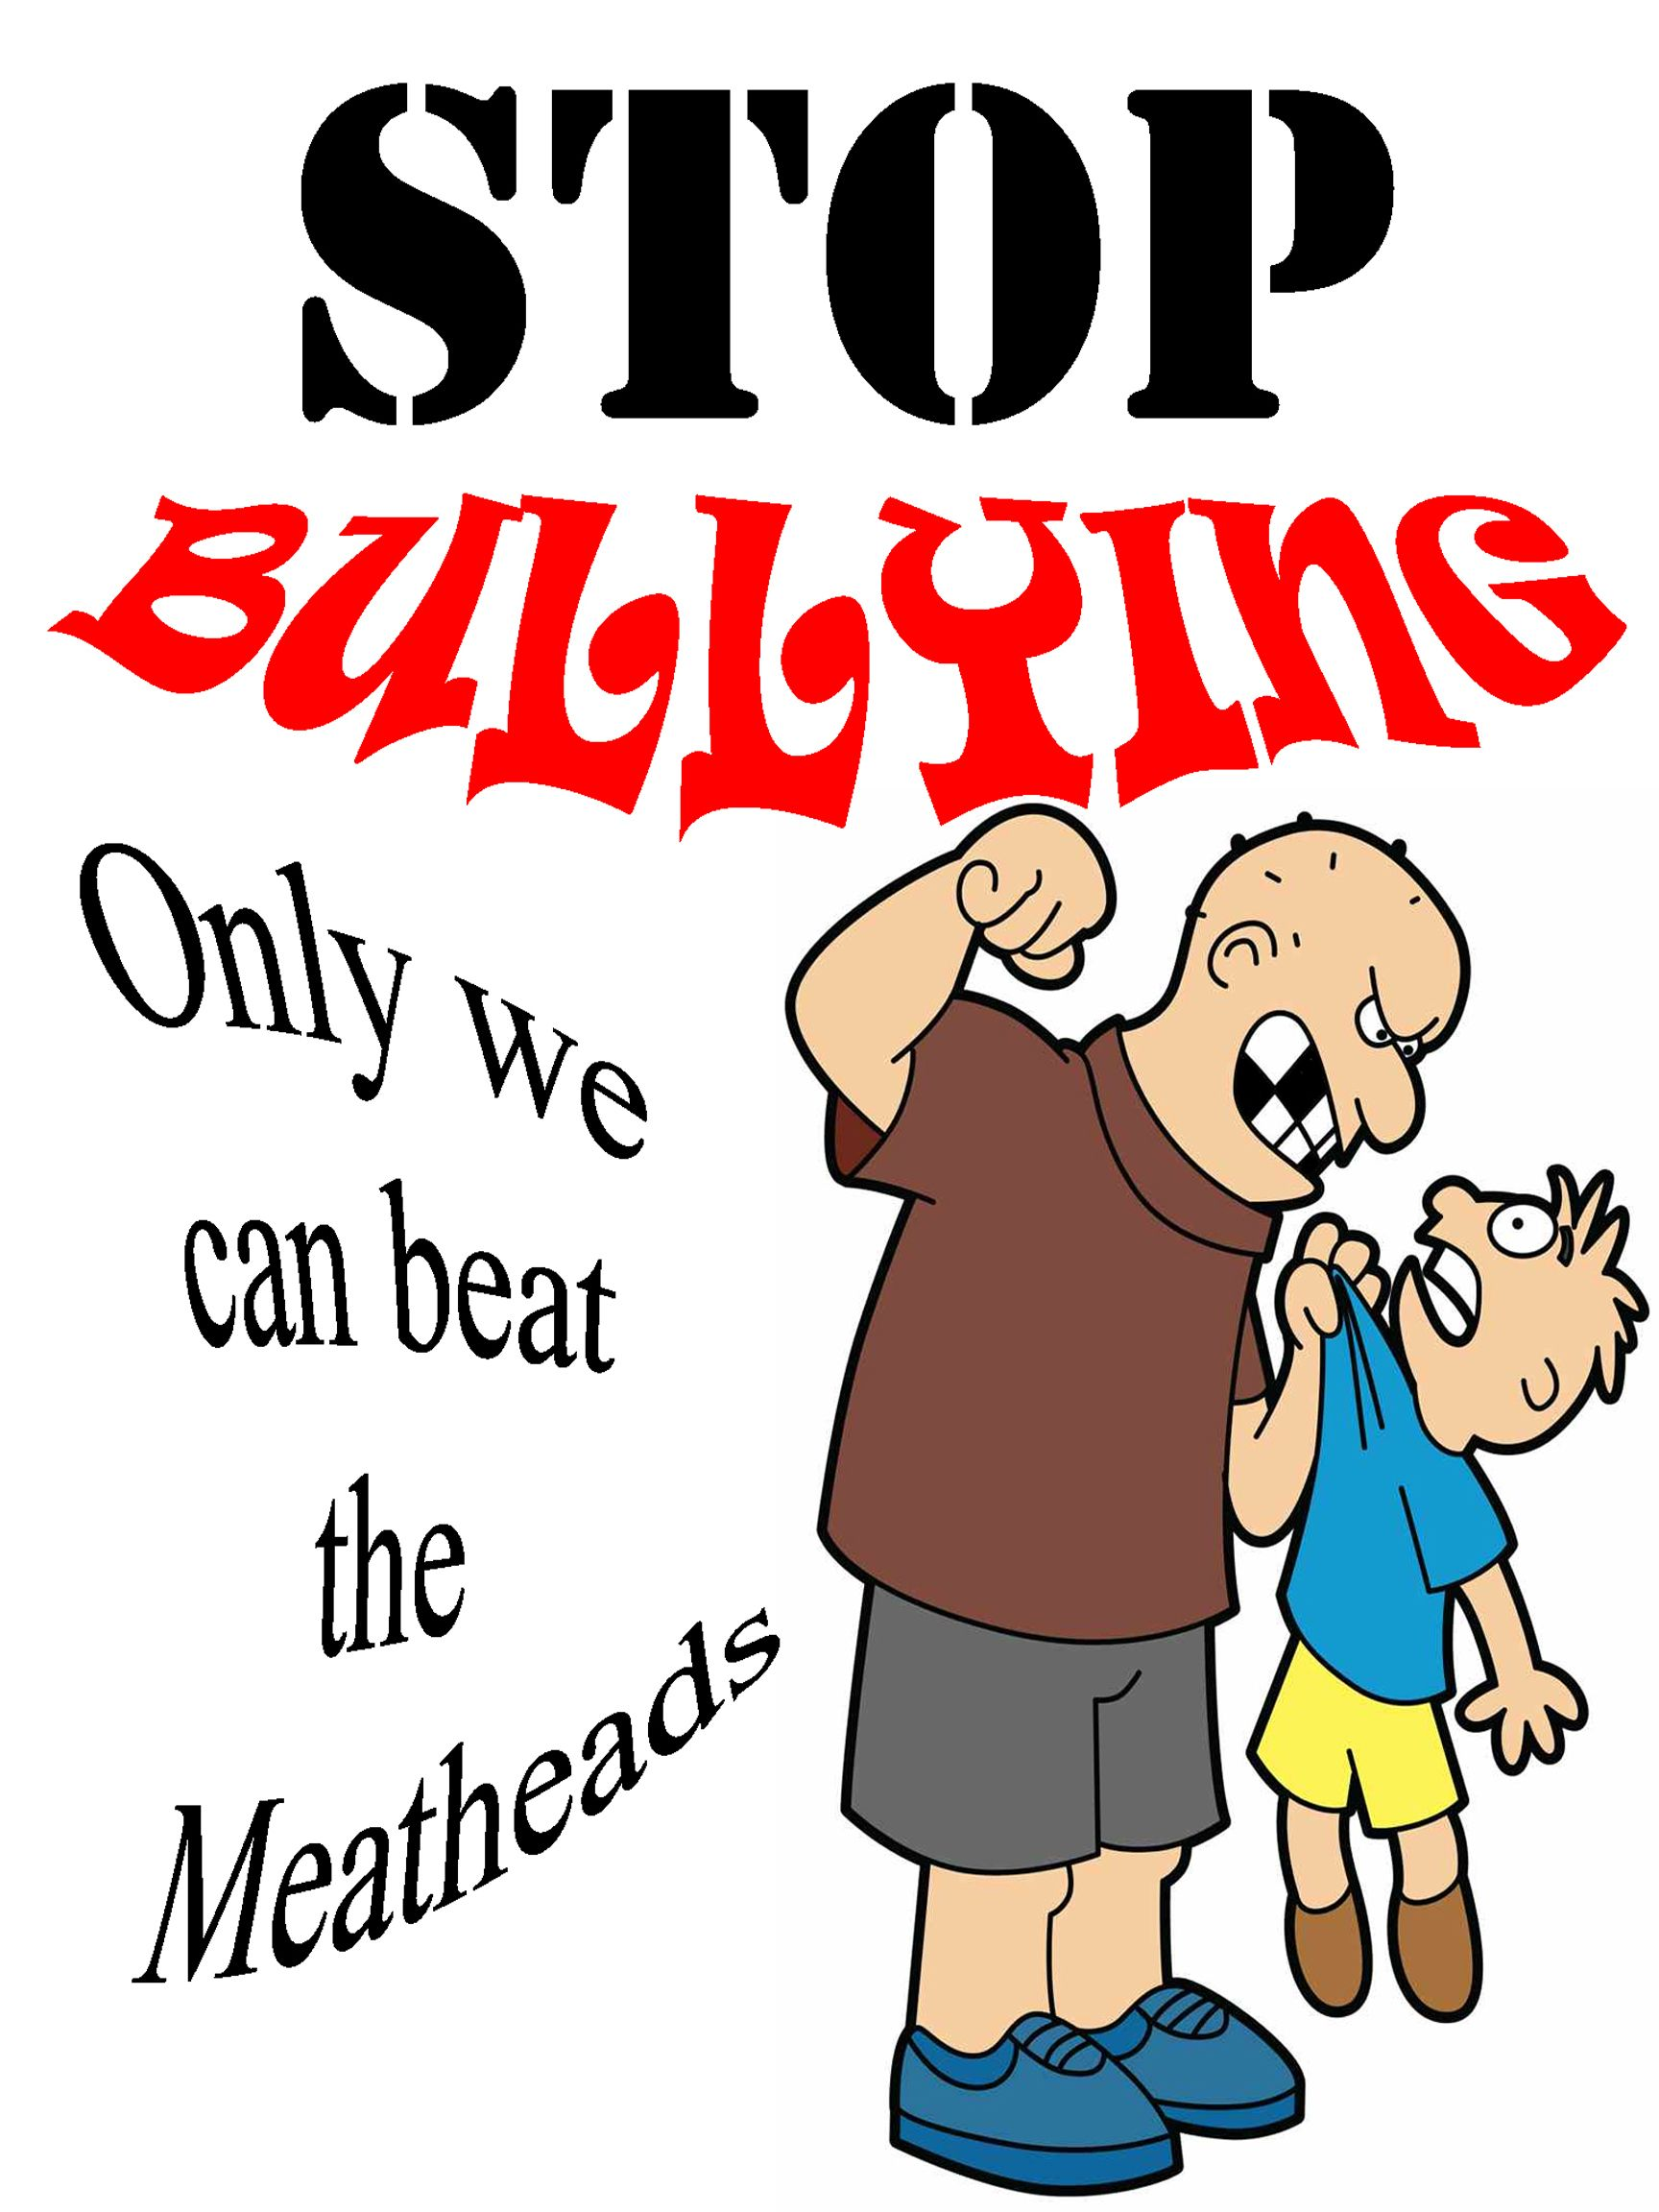 My Computer Graphics Class Posters Class Poster Stop Bullying Bullying